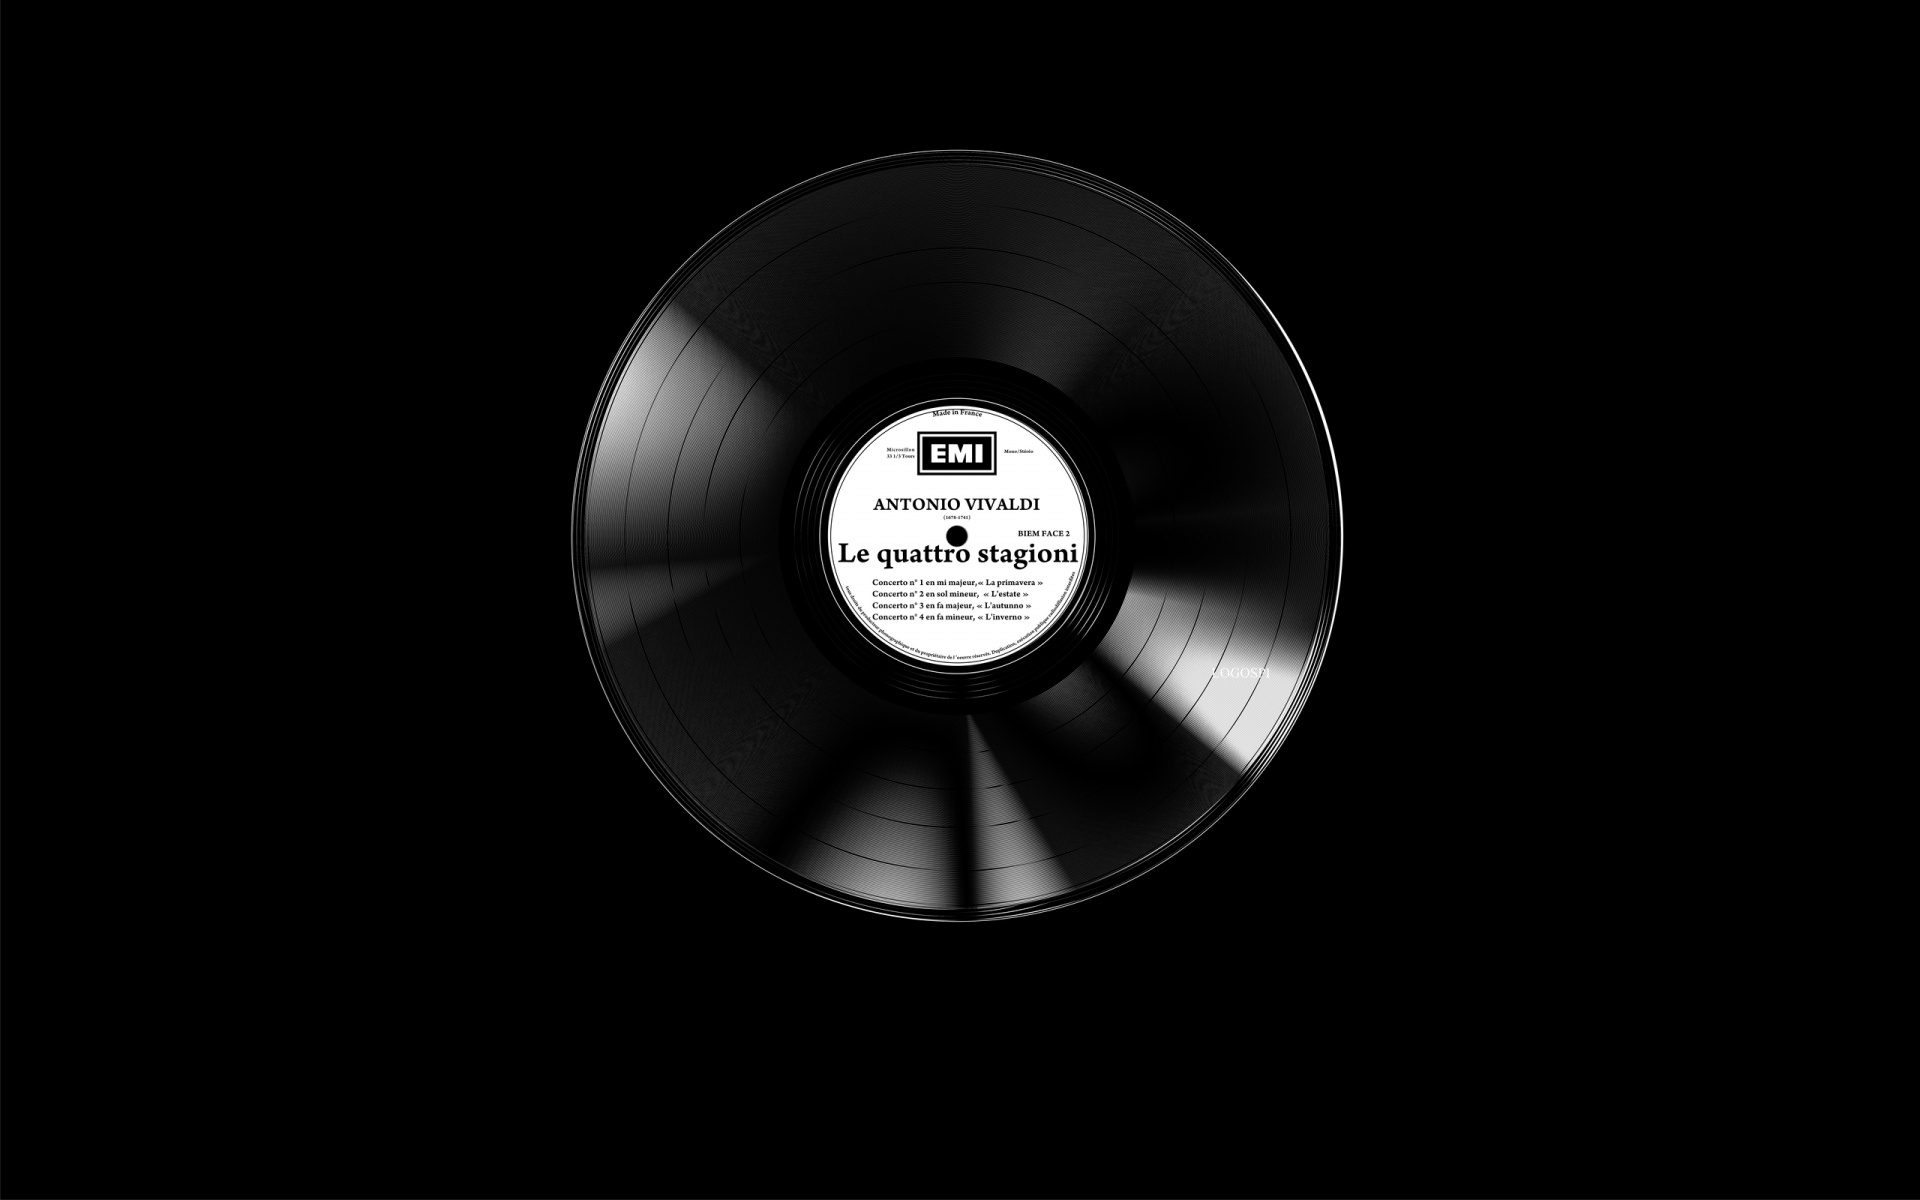 Free Download Vinyl Disc Wallpapers Hd 17560 1920x1200 For